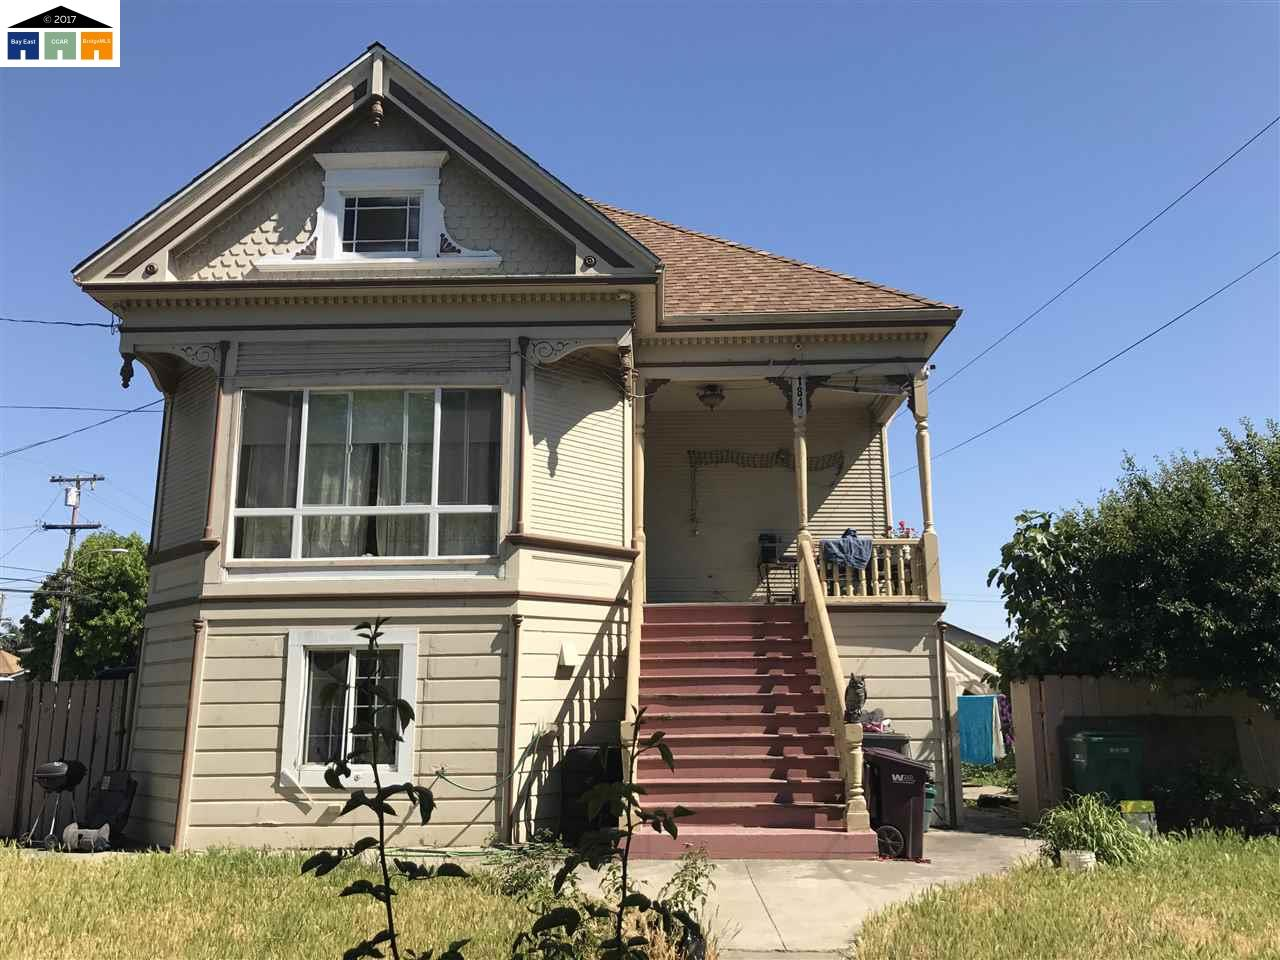 Additional photo for property listing at 1840 90Th Avenue 1840 90Th Avenue Oakland, Kalifornien 94603 Vereinigte Staaten